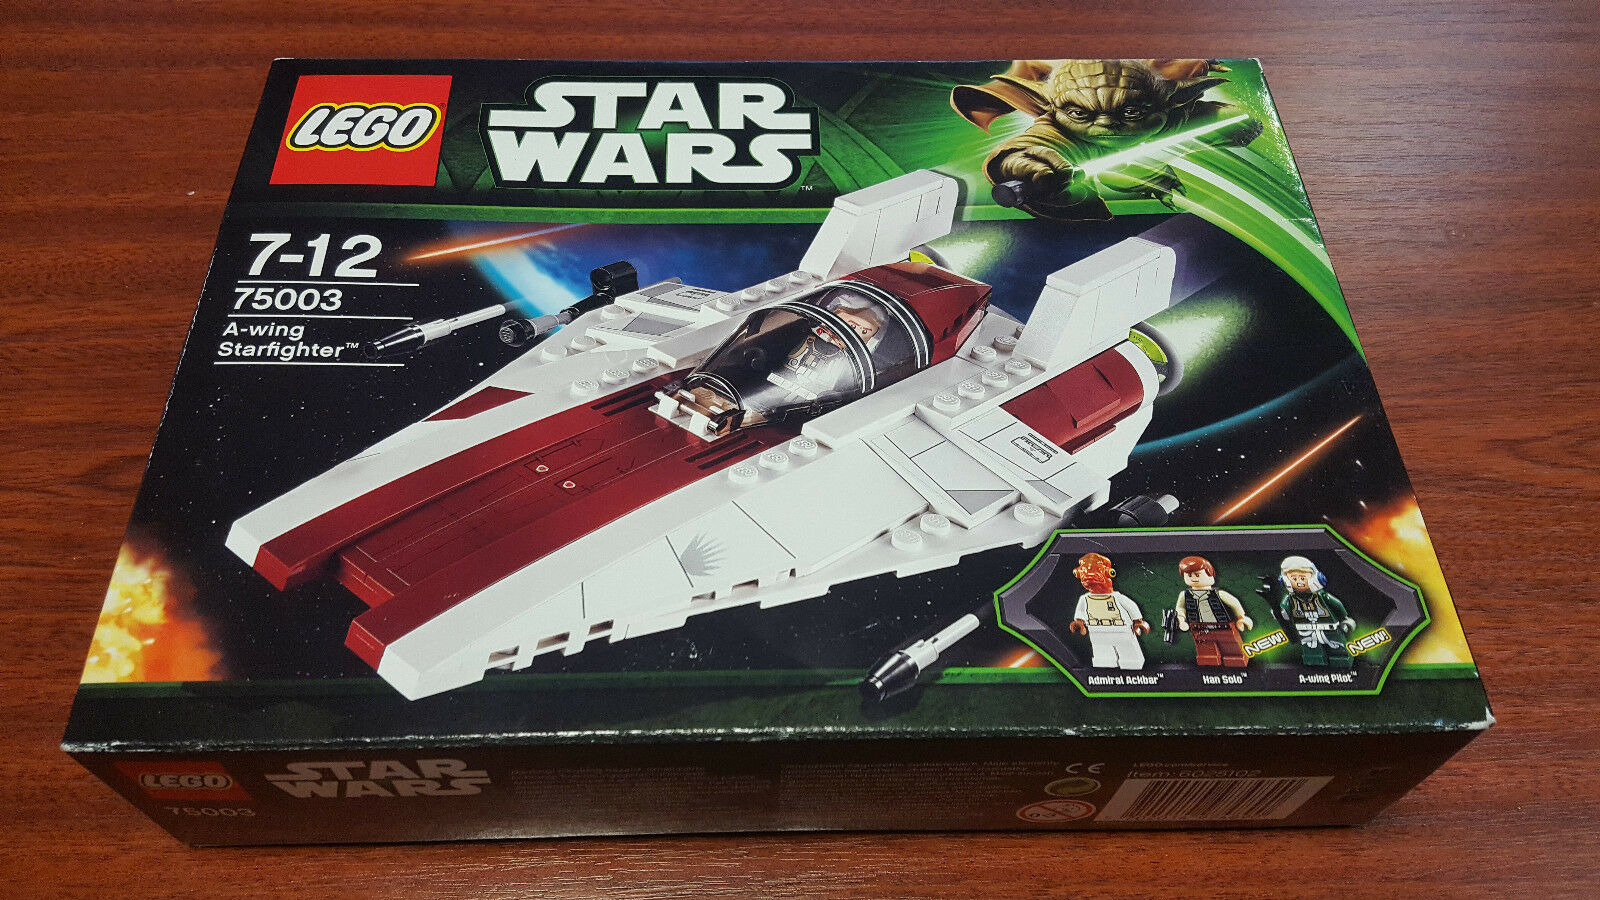 LEGO STAR WARS 75003  A-WING Starfighter  - NEW - NEUF - SUPERBE - RARE